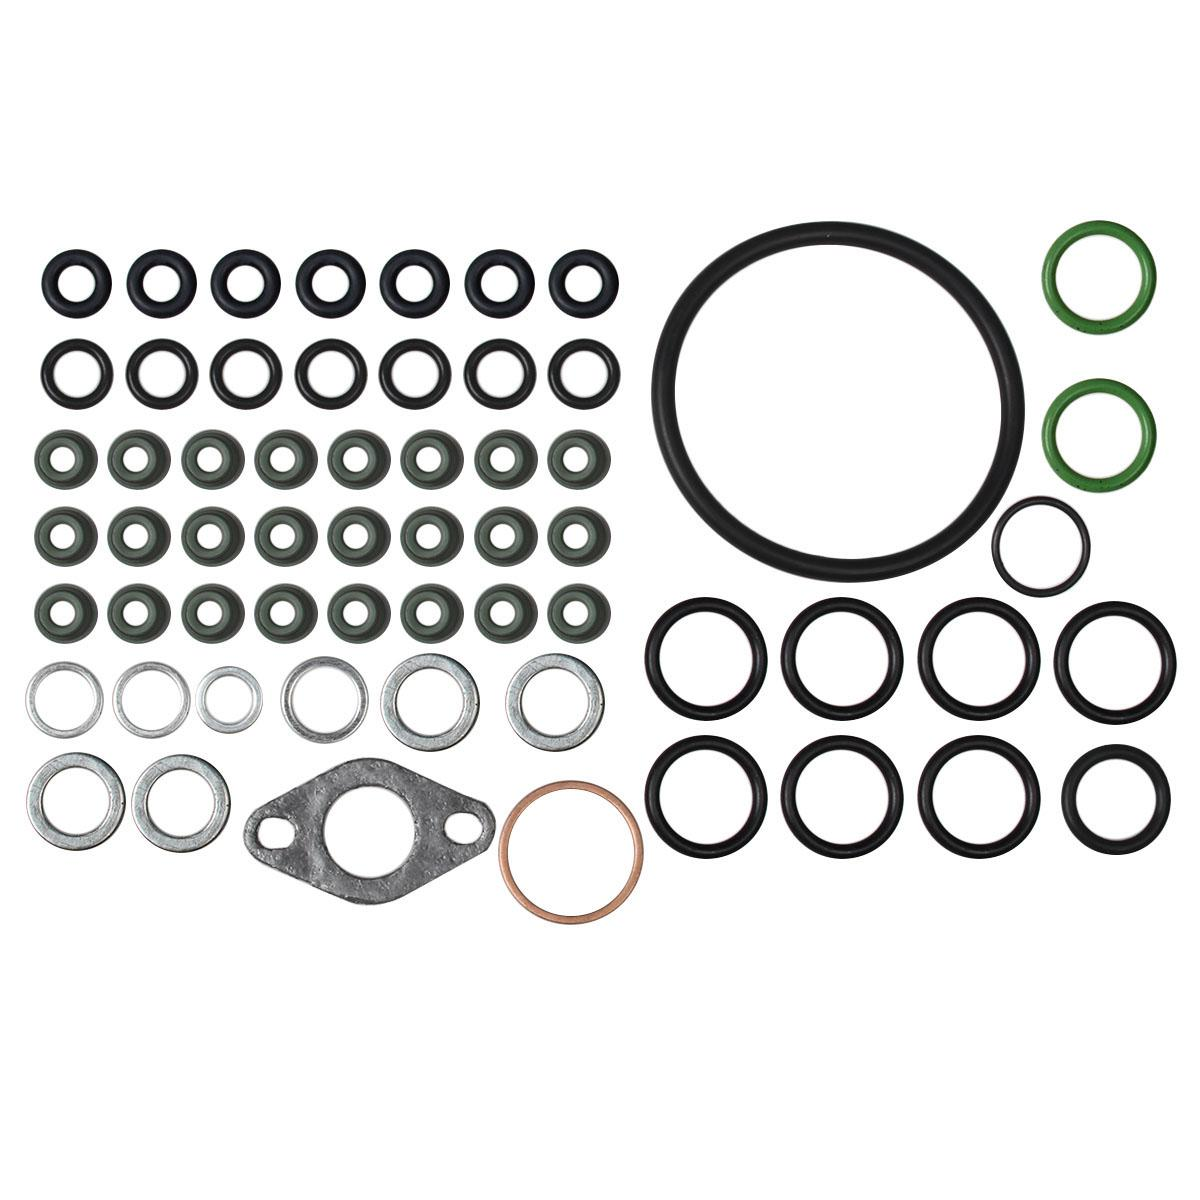 Oil Pan Reseal Cost also Ambient Air Temperature Sensor Location E46 as well Ford F 150 Front Suspension Diagram Furthermore Mercedes Benz further Car Oil Filter Guide also Cooling System Water Hoses. on bmw x5 coolant temperature sensor